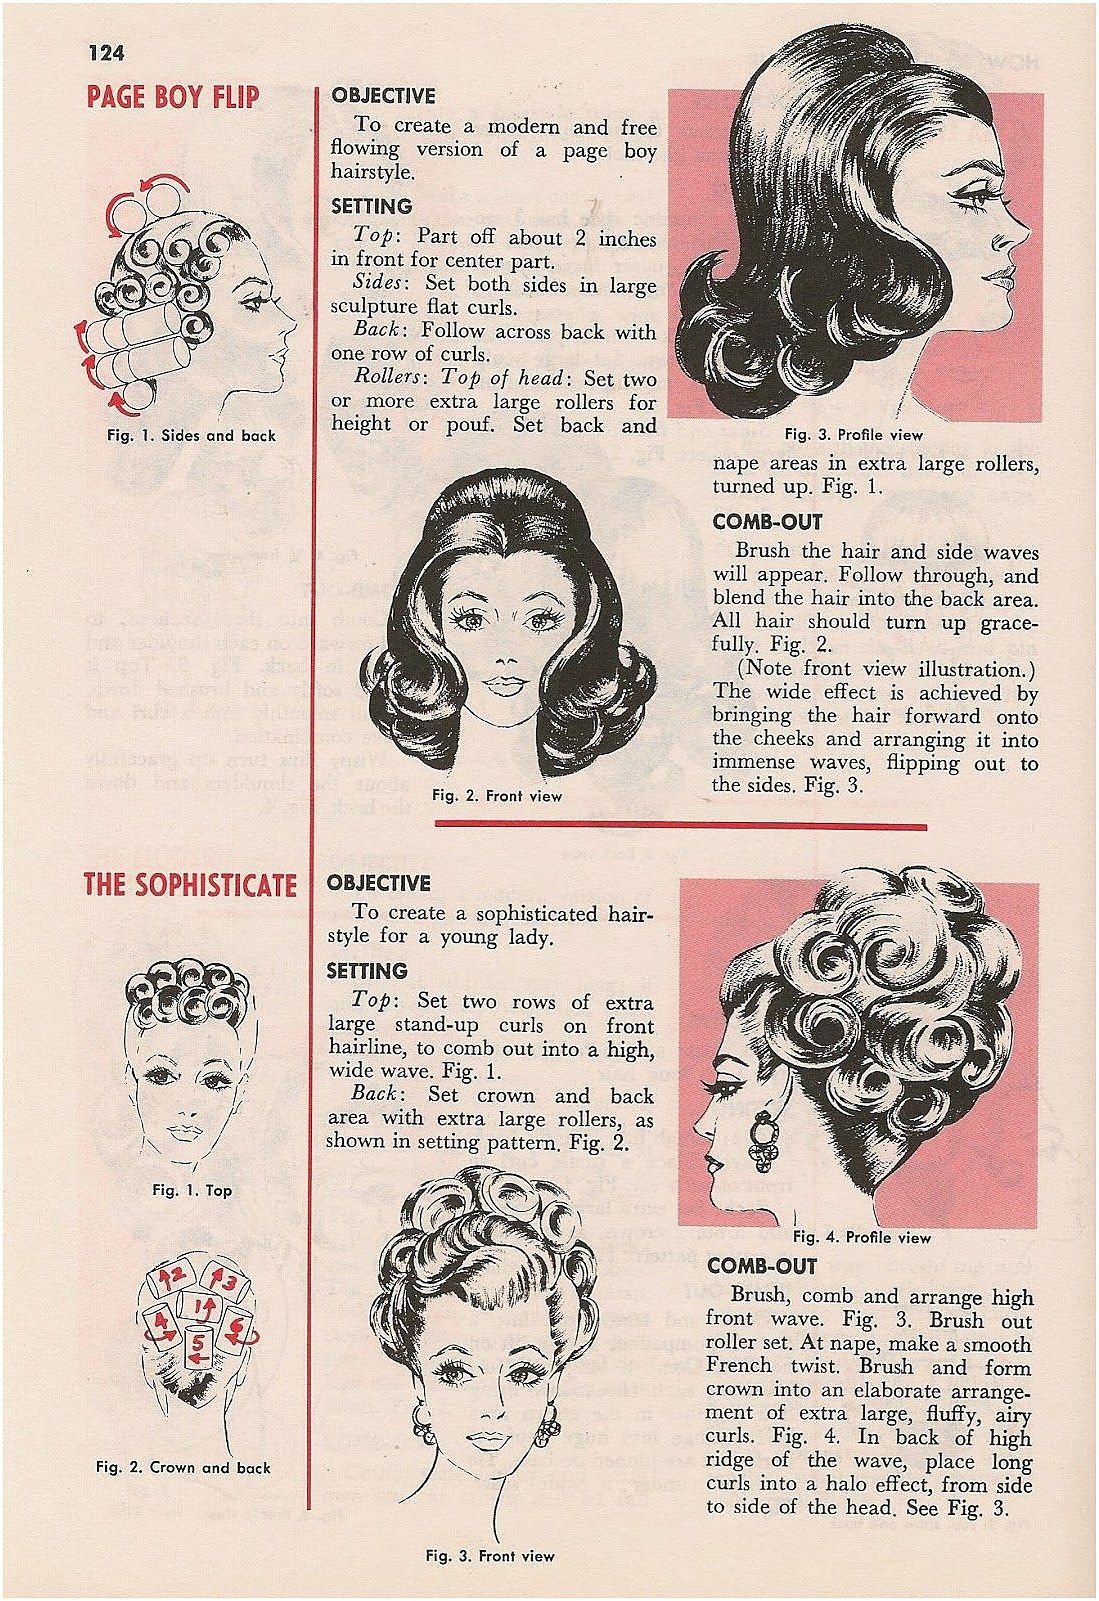 Boy hairstyle back retrotattoos oldschooltattoo page boy flip is fairly easy to do